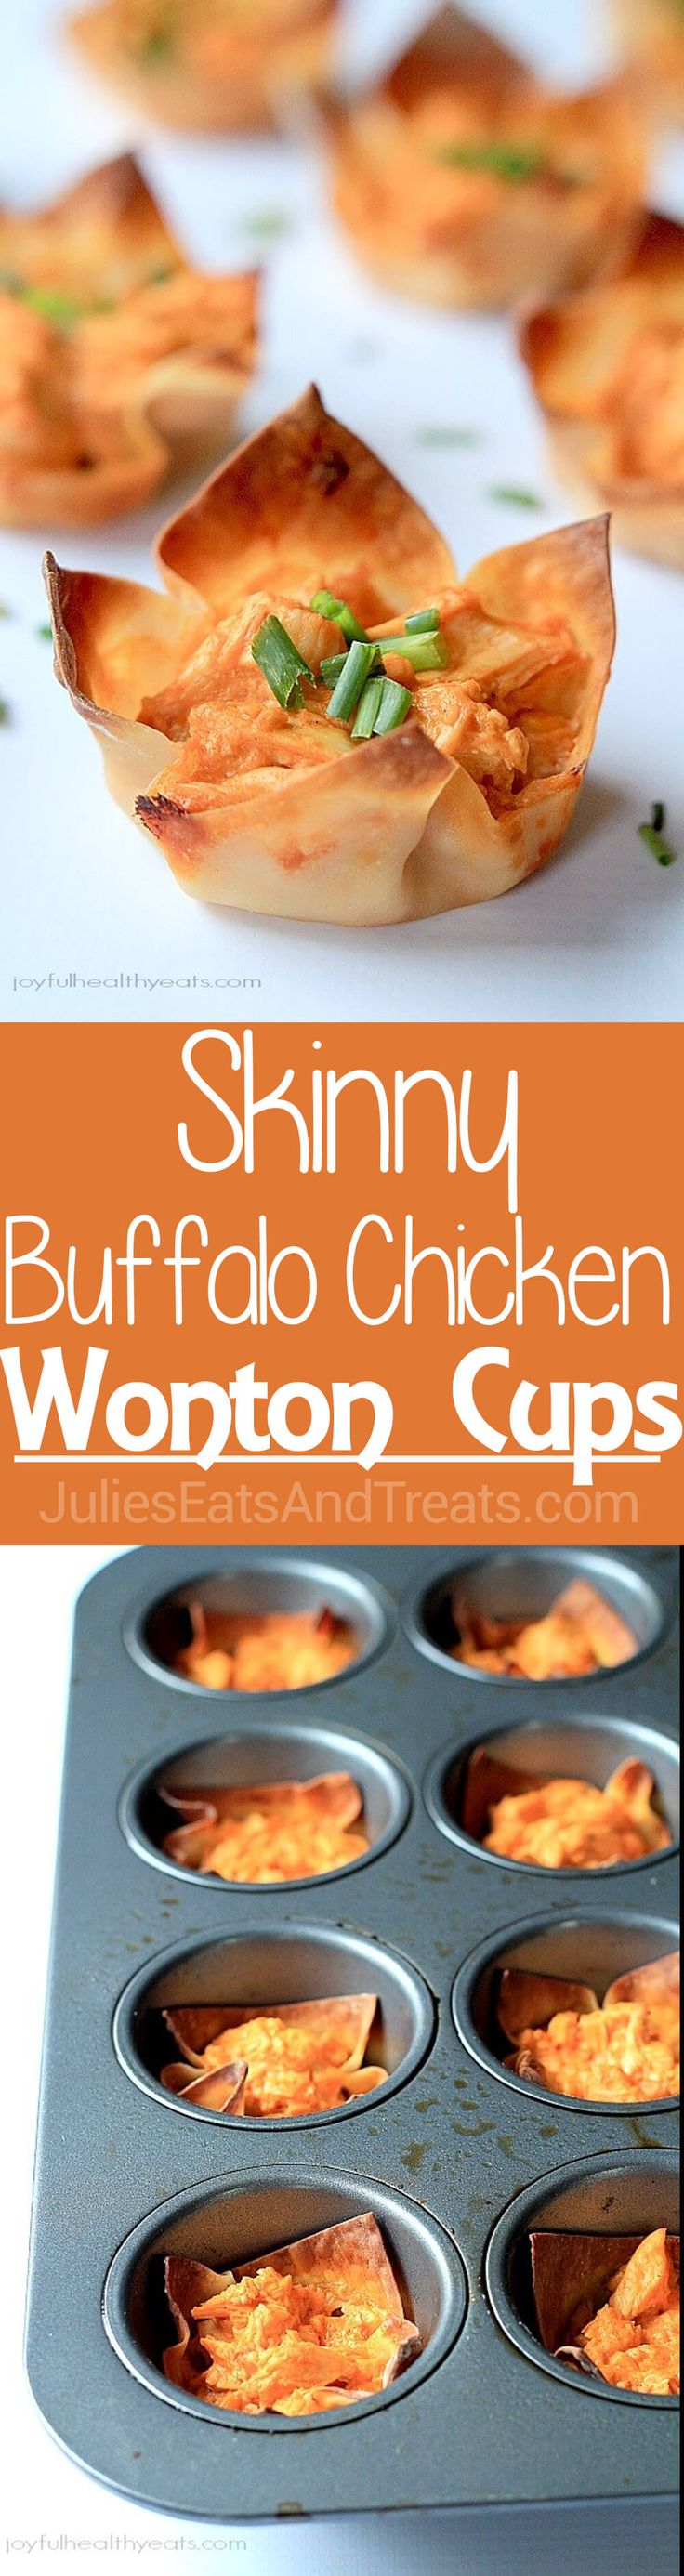 Skinny Buffalo Chicken Wonton Cups ~ Your favorite Buffalo Dip in